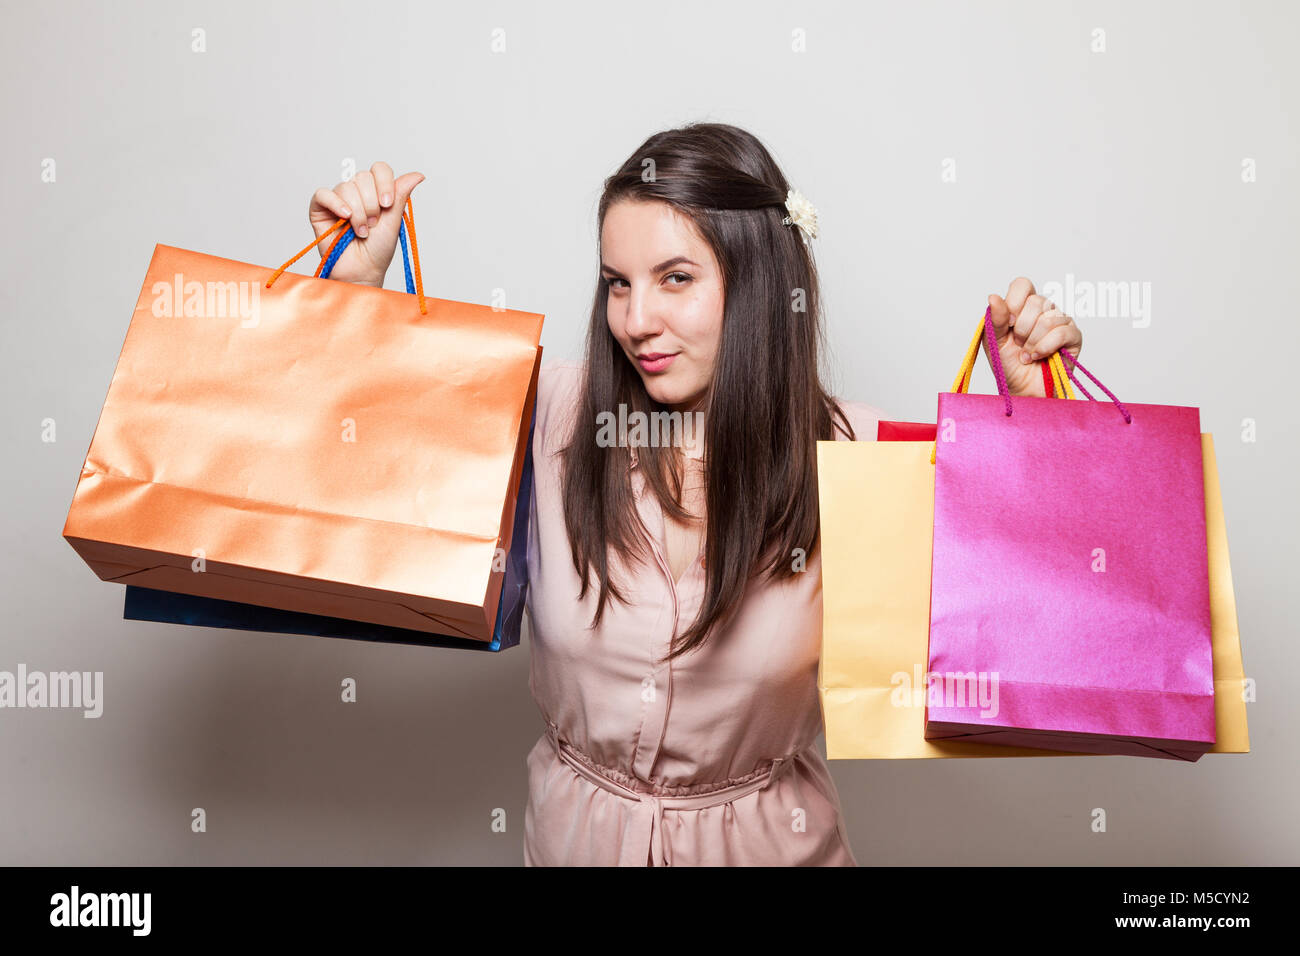 Girl has a tricky glance holding gift bags - Stock Image